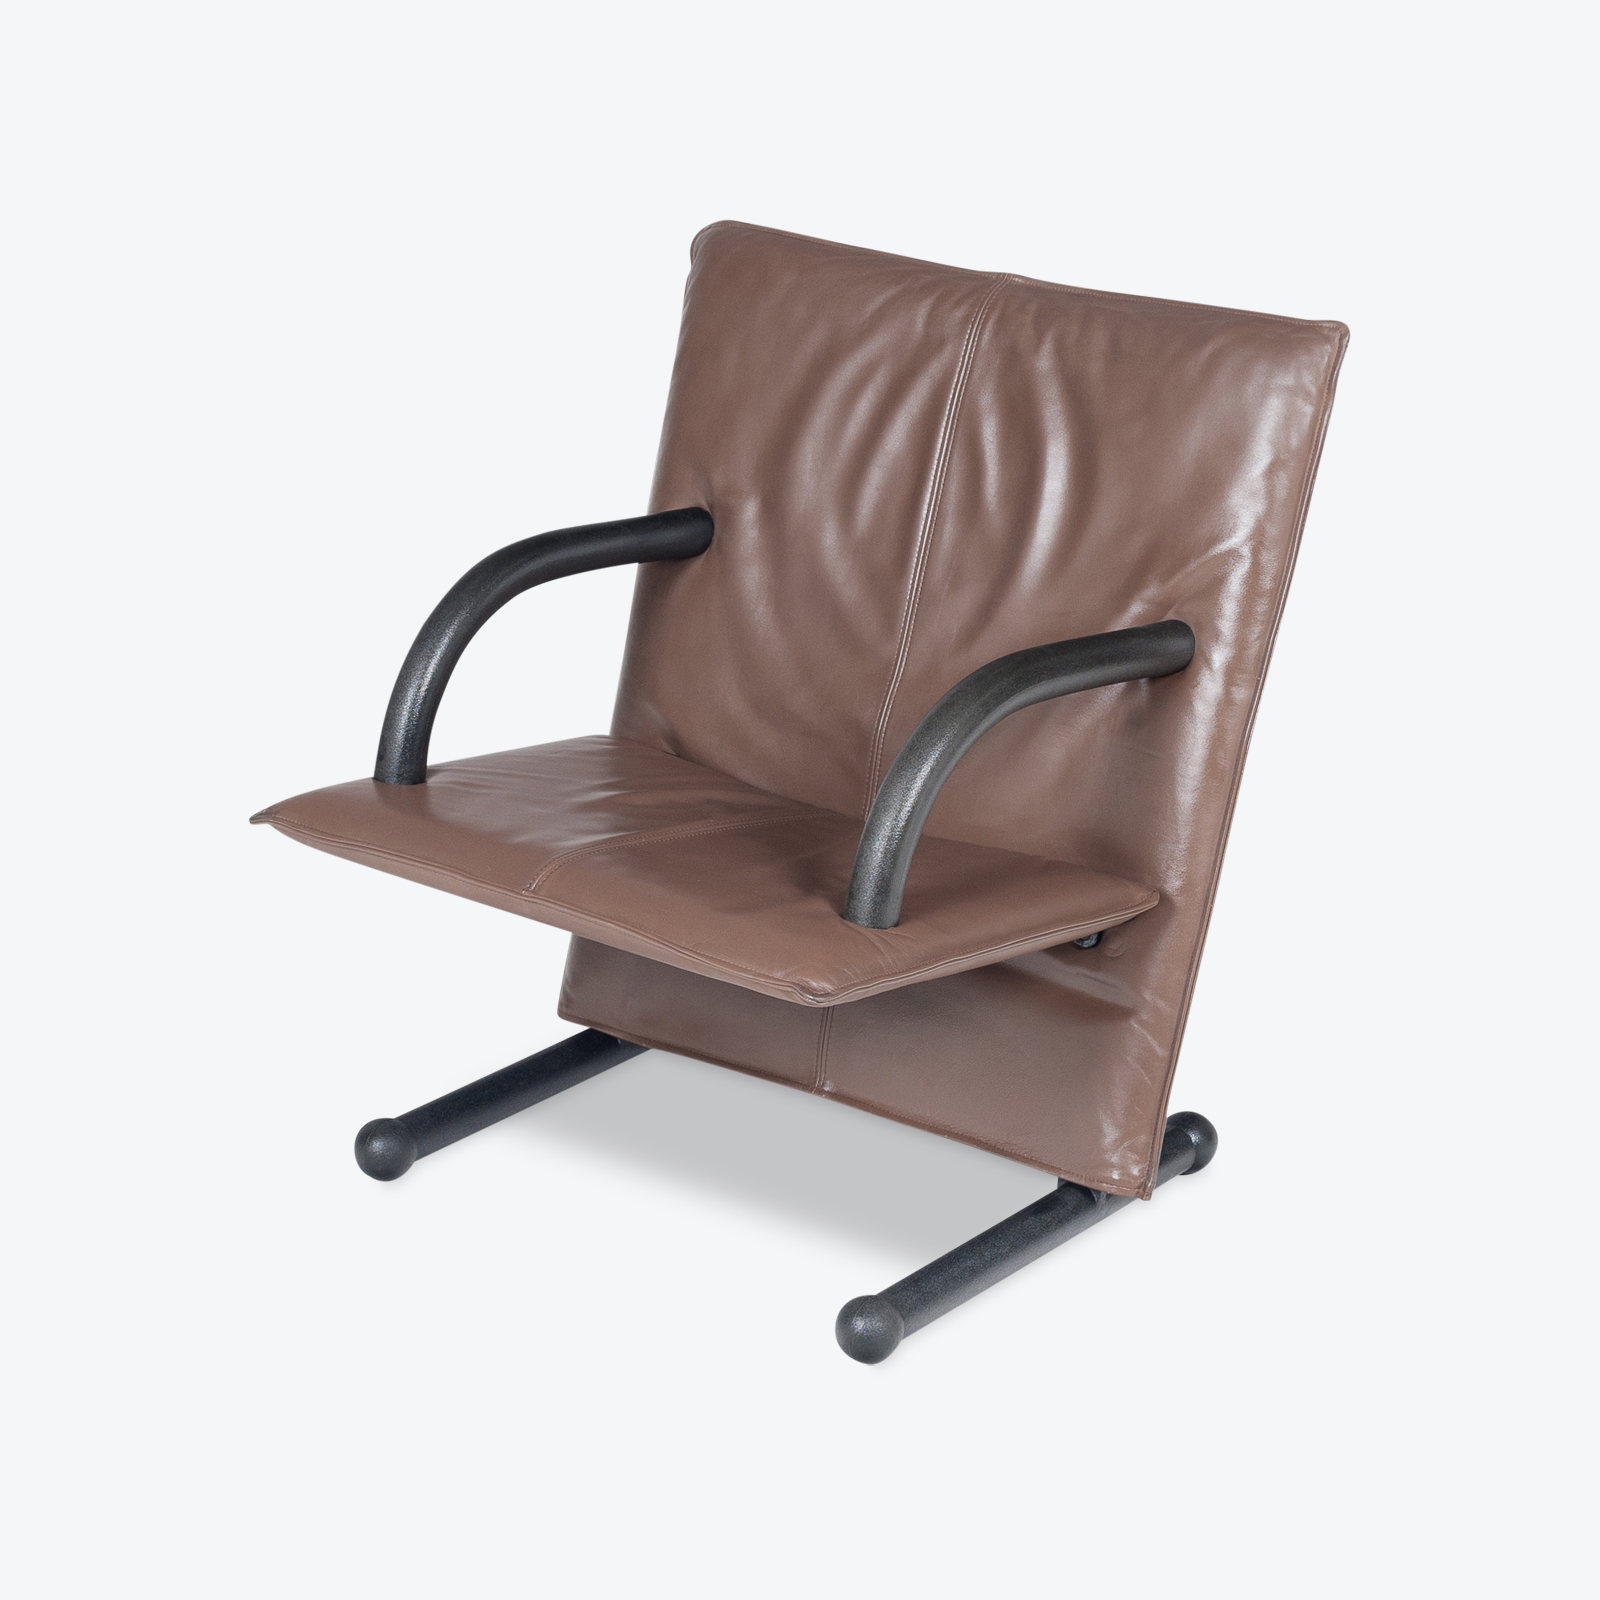 Model T Line Chair In By Burkhard Vogtherr For Arflex In Brown Leather, 1980s, Italy Hero